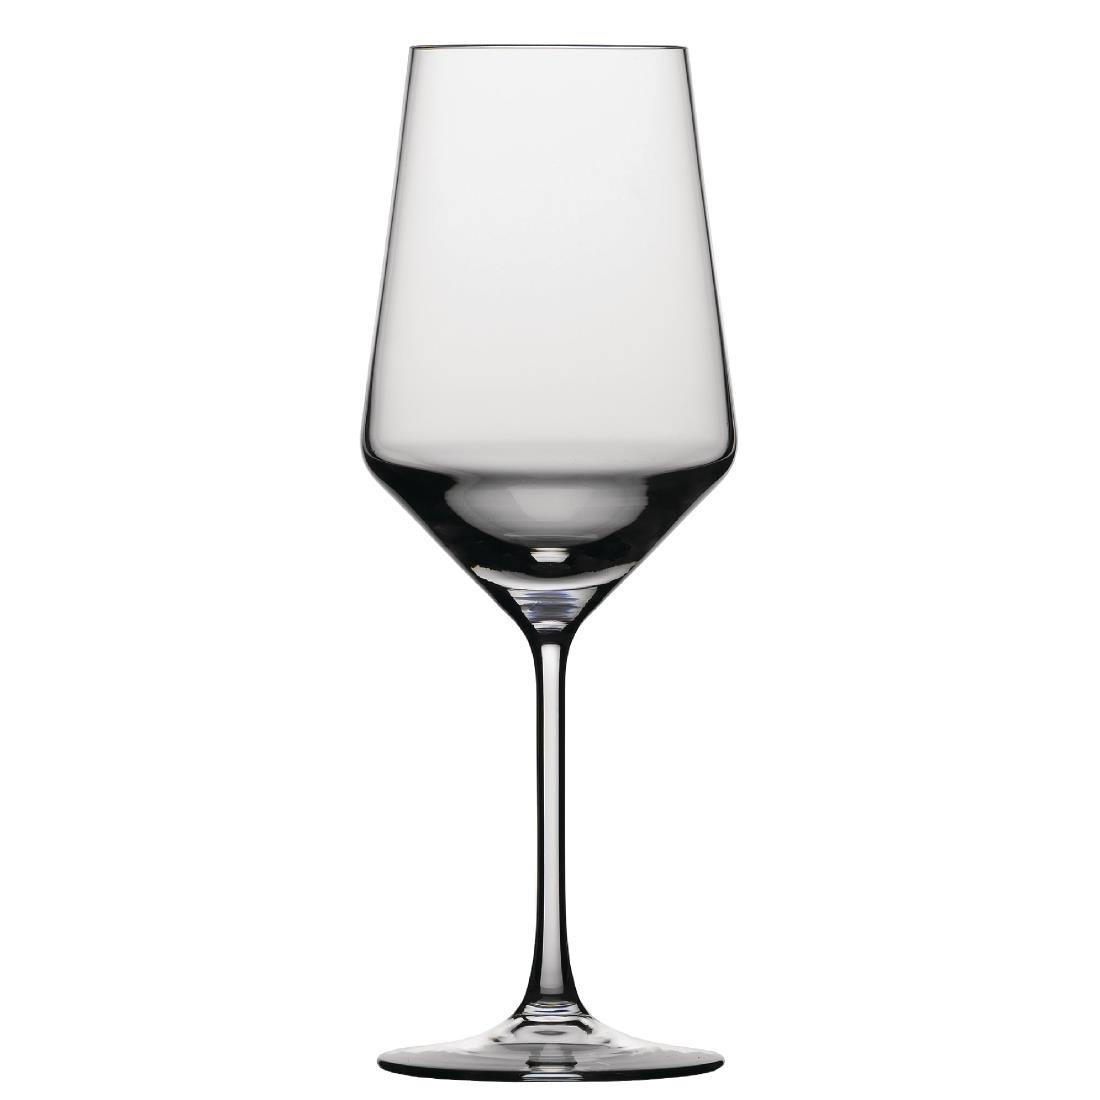 Schott Zwiesel Pure Crystal Red Wine Glasses 540ml Pack Of 6 Gd900 Buy Online At Nisbets